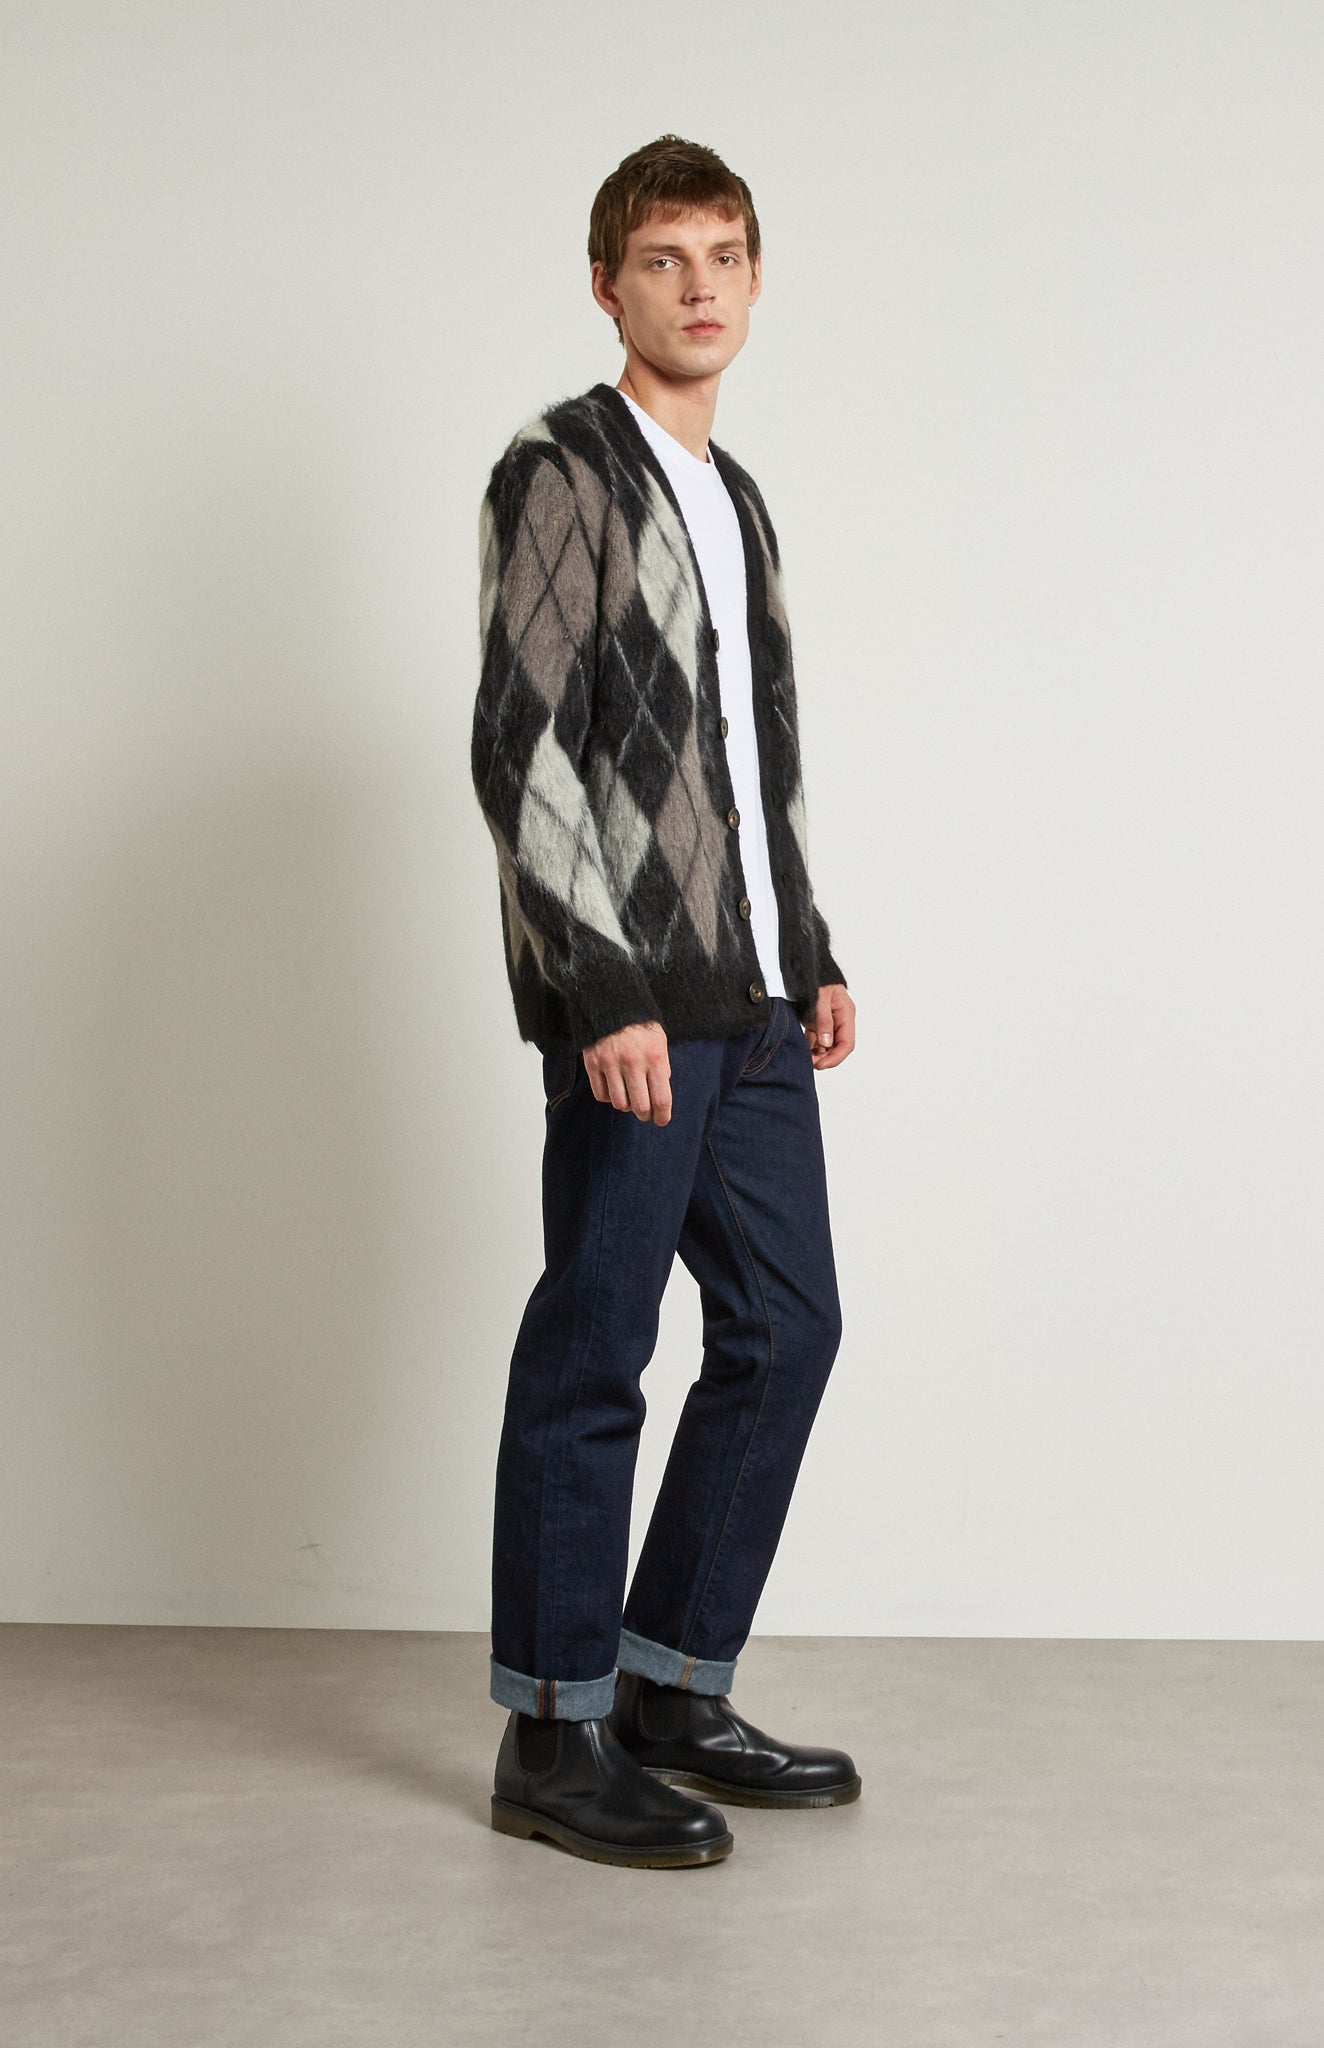 Pringle Reissued Unisex Monochrome Argyle Cardigan on male model